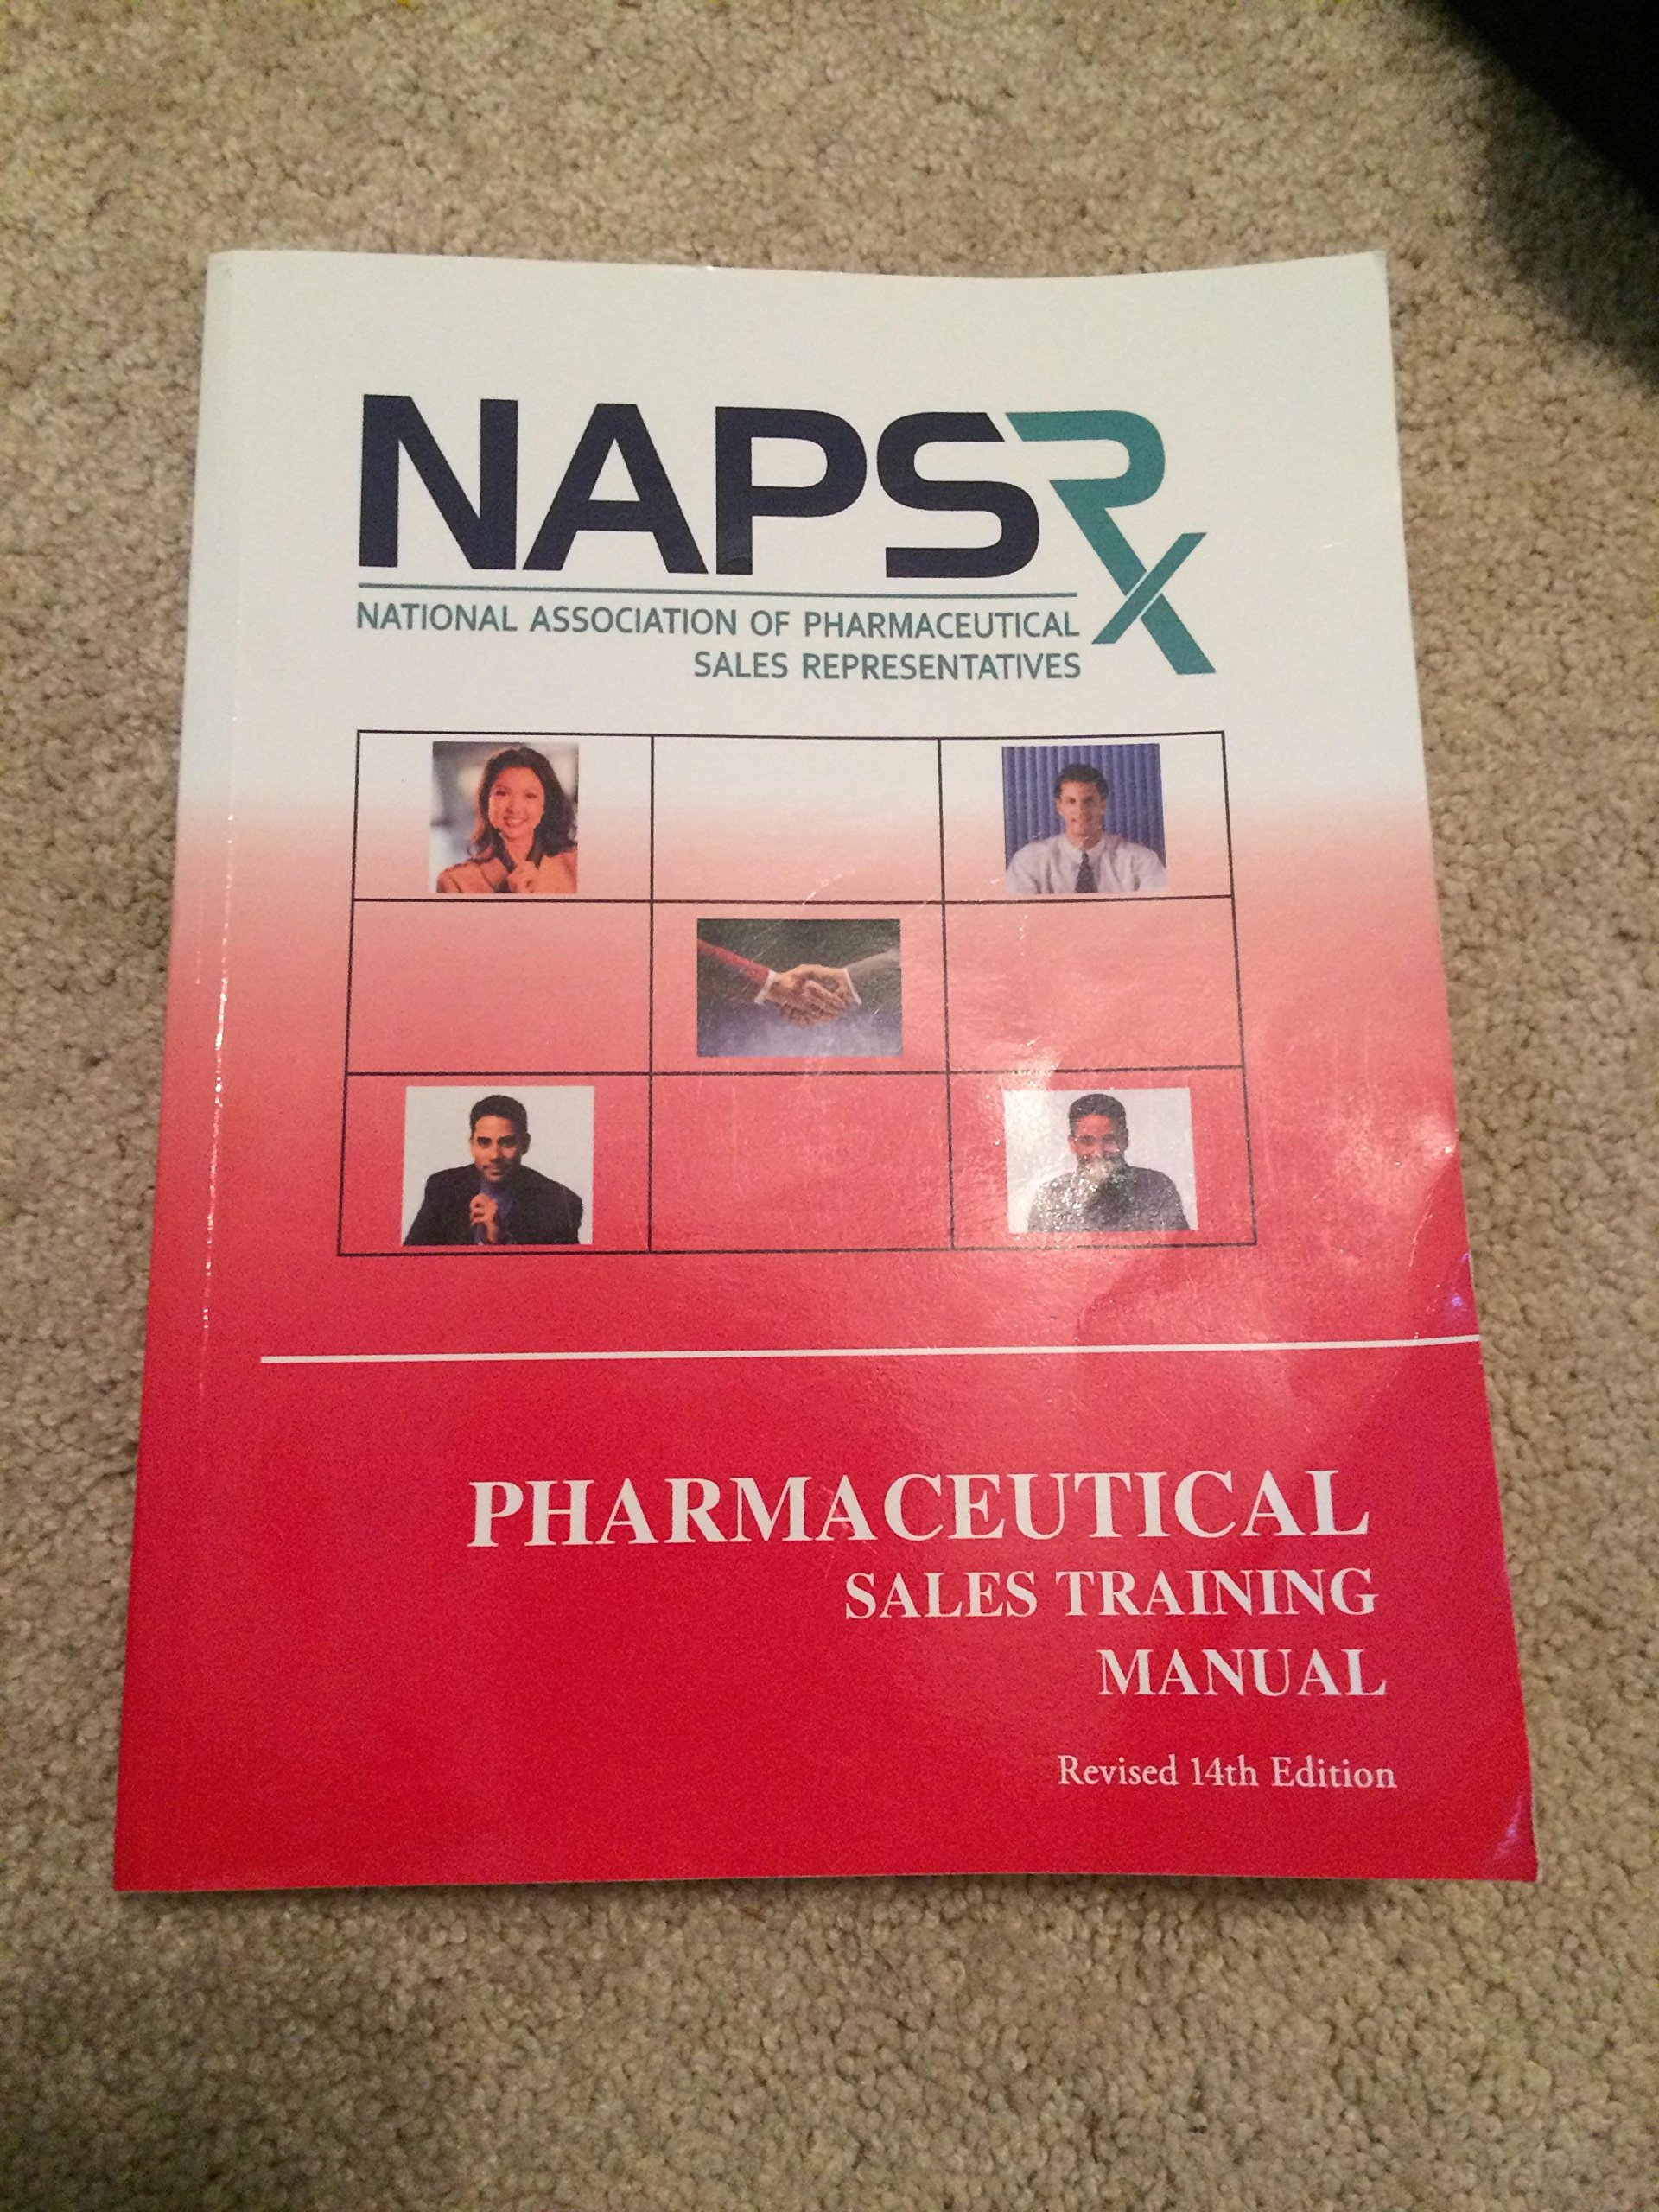 Napsrx national association of pharmaceutical representatives napsrx national association of pharmaceutical representatives sales training manual revised 14th edition 2014 national association of pharmaceutical sales xflitez Image collections